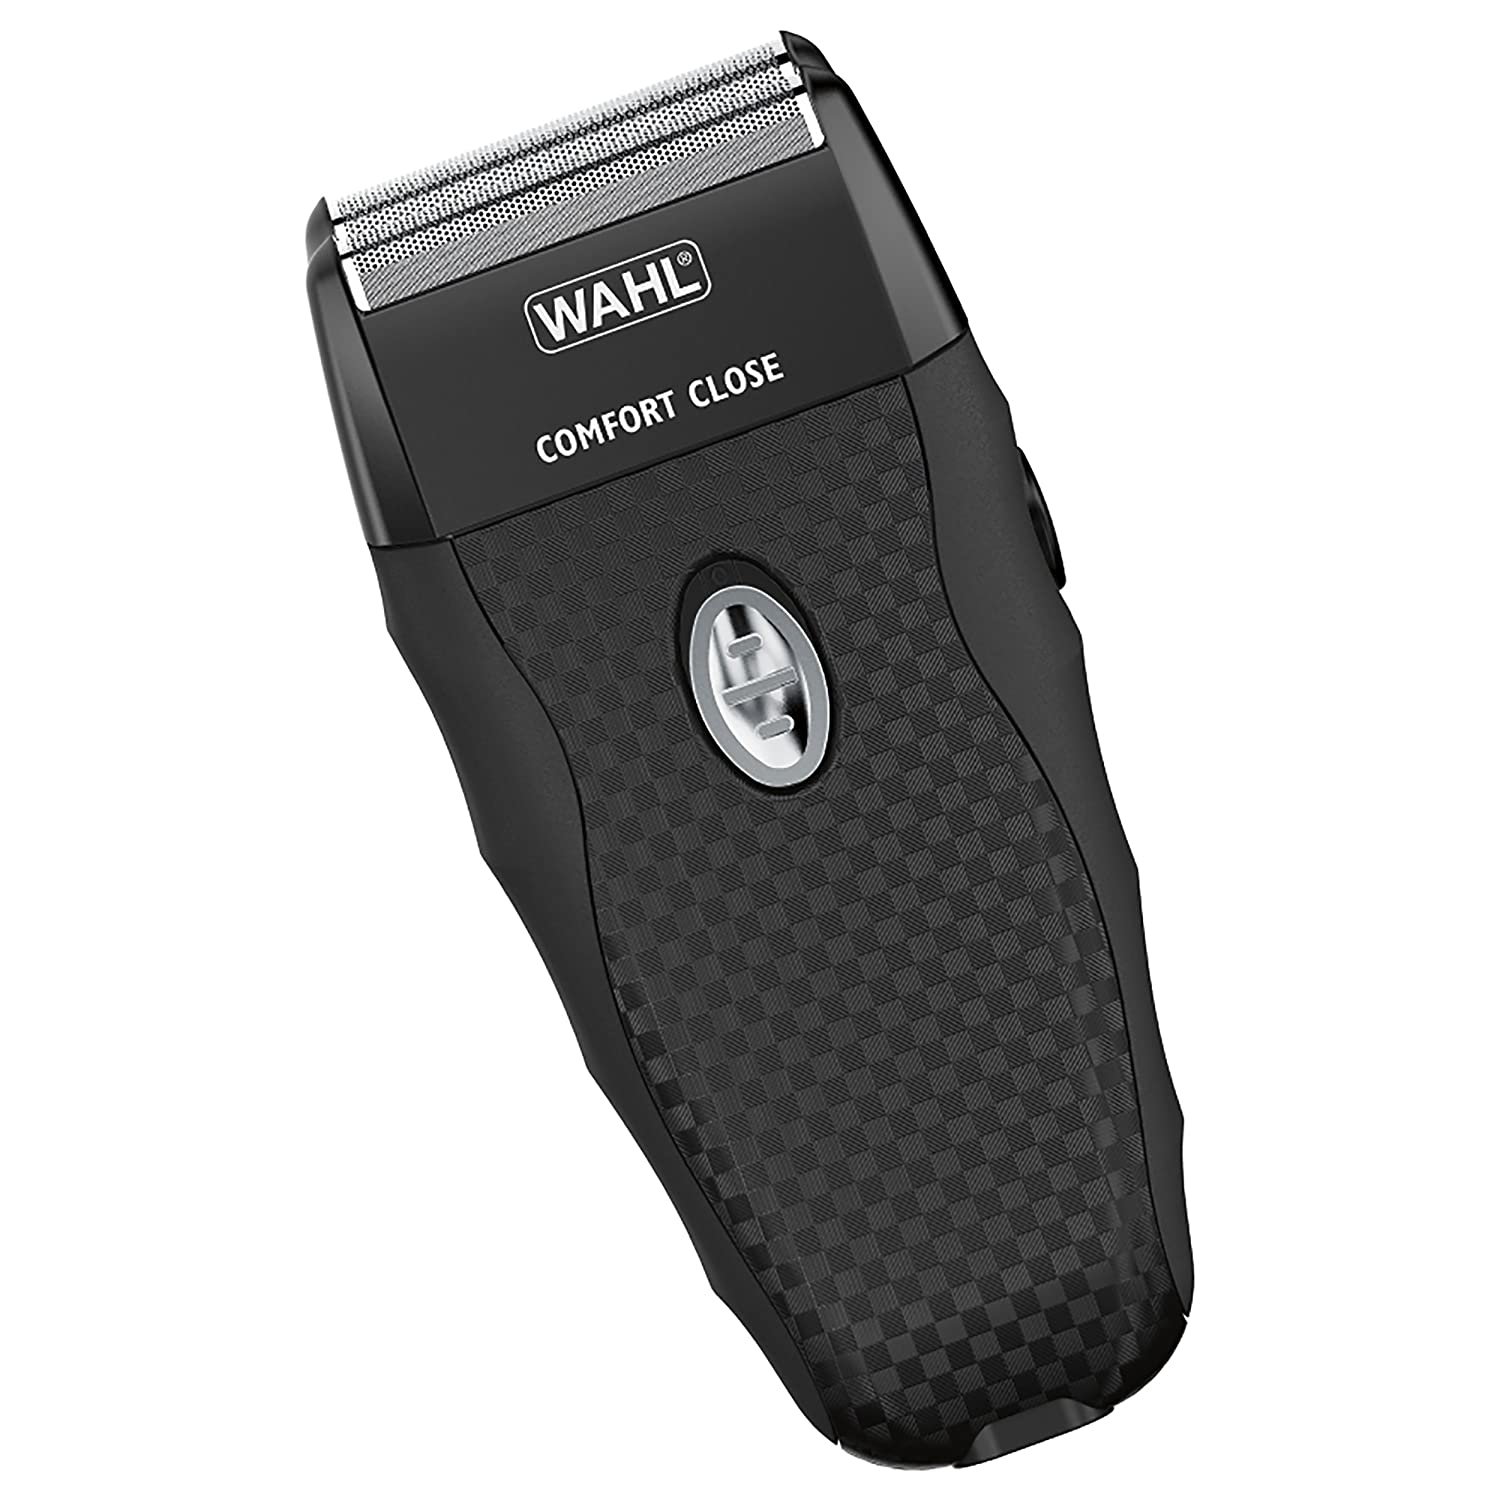 Wahl FlexShave Rechargeable dual foil shaver with 3 replacement foils for shaving, balding, shave, grooming, and razor with full width popup trimmer 7367-300 Wahl Clipper Corp 7367300